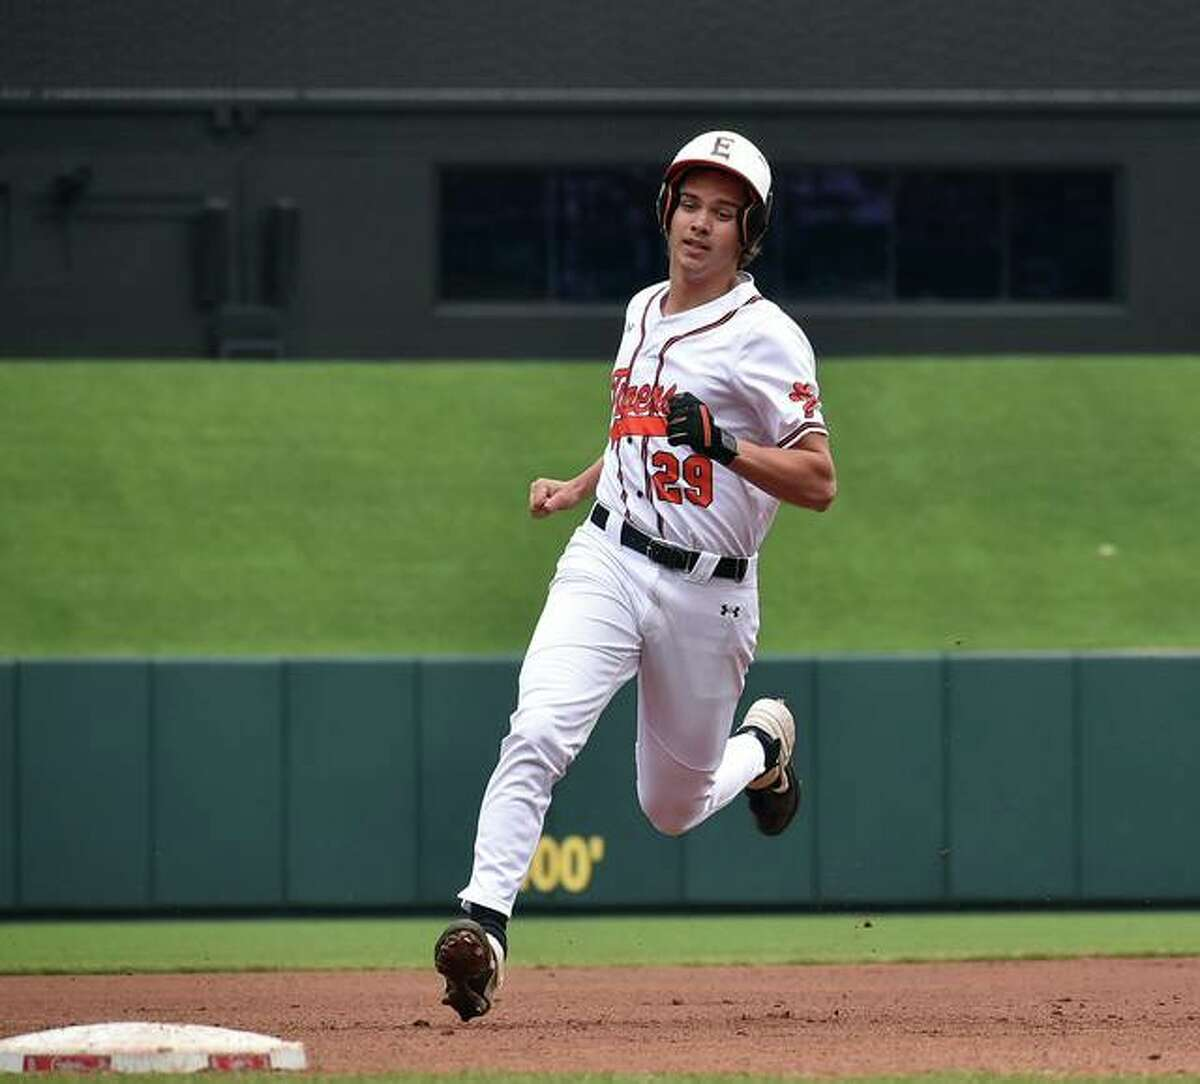 In this file photo, Edwardsville's Spencer Stearns strolls into third base with a stand-up triple during a game against Triad at Busch Stadium. On Thursday against O'Fallon, Stearns drove in a career-high five runs.